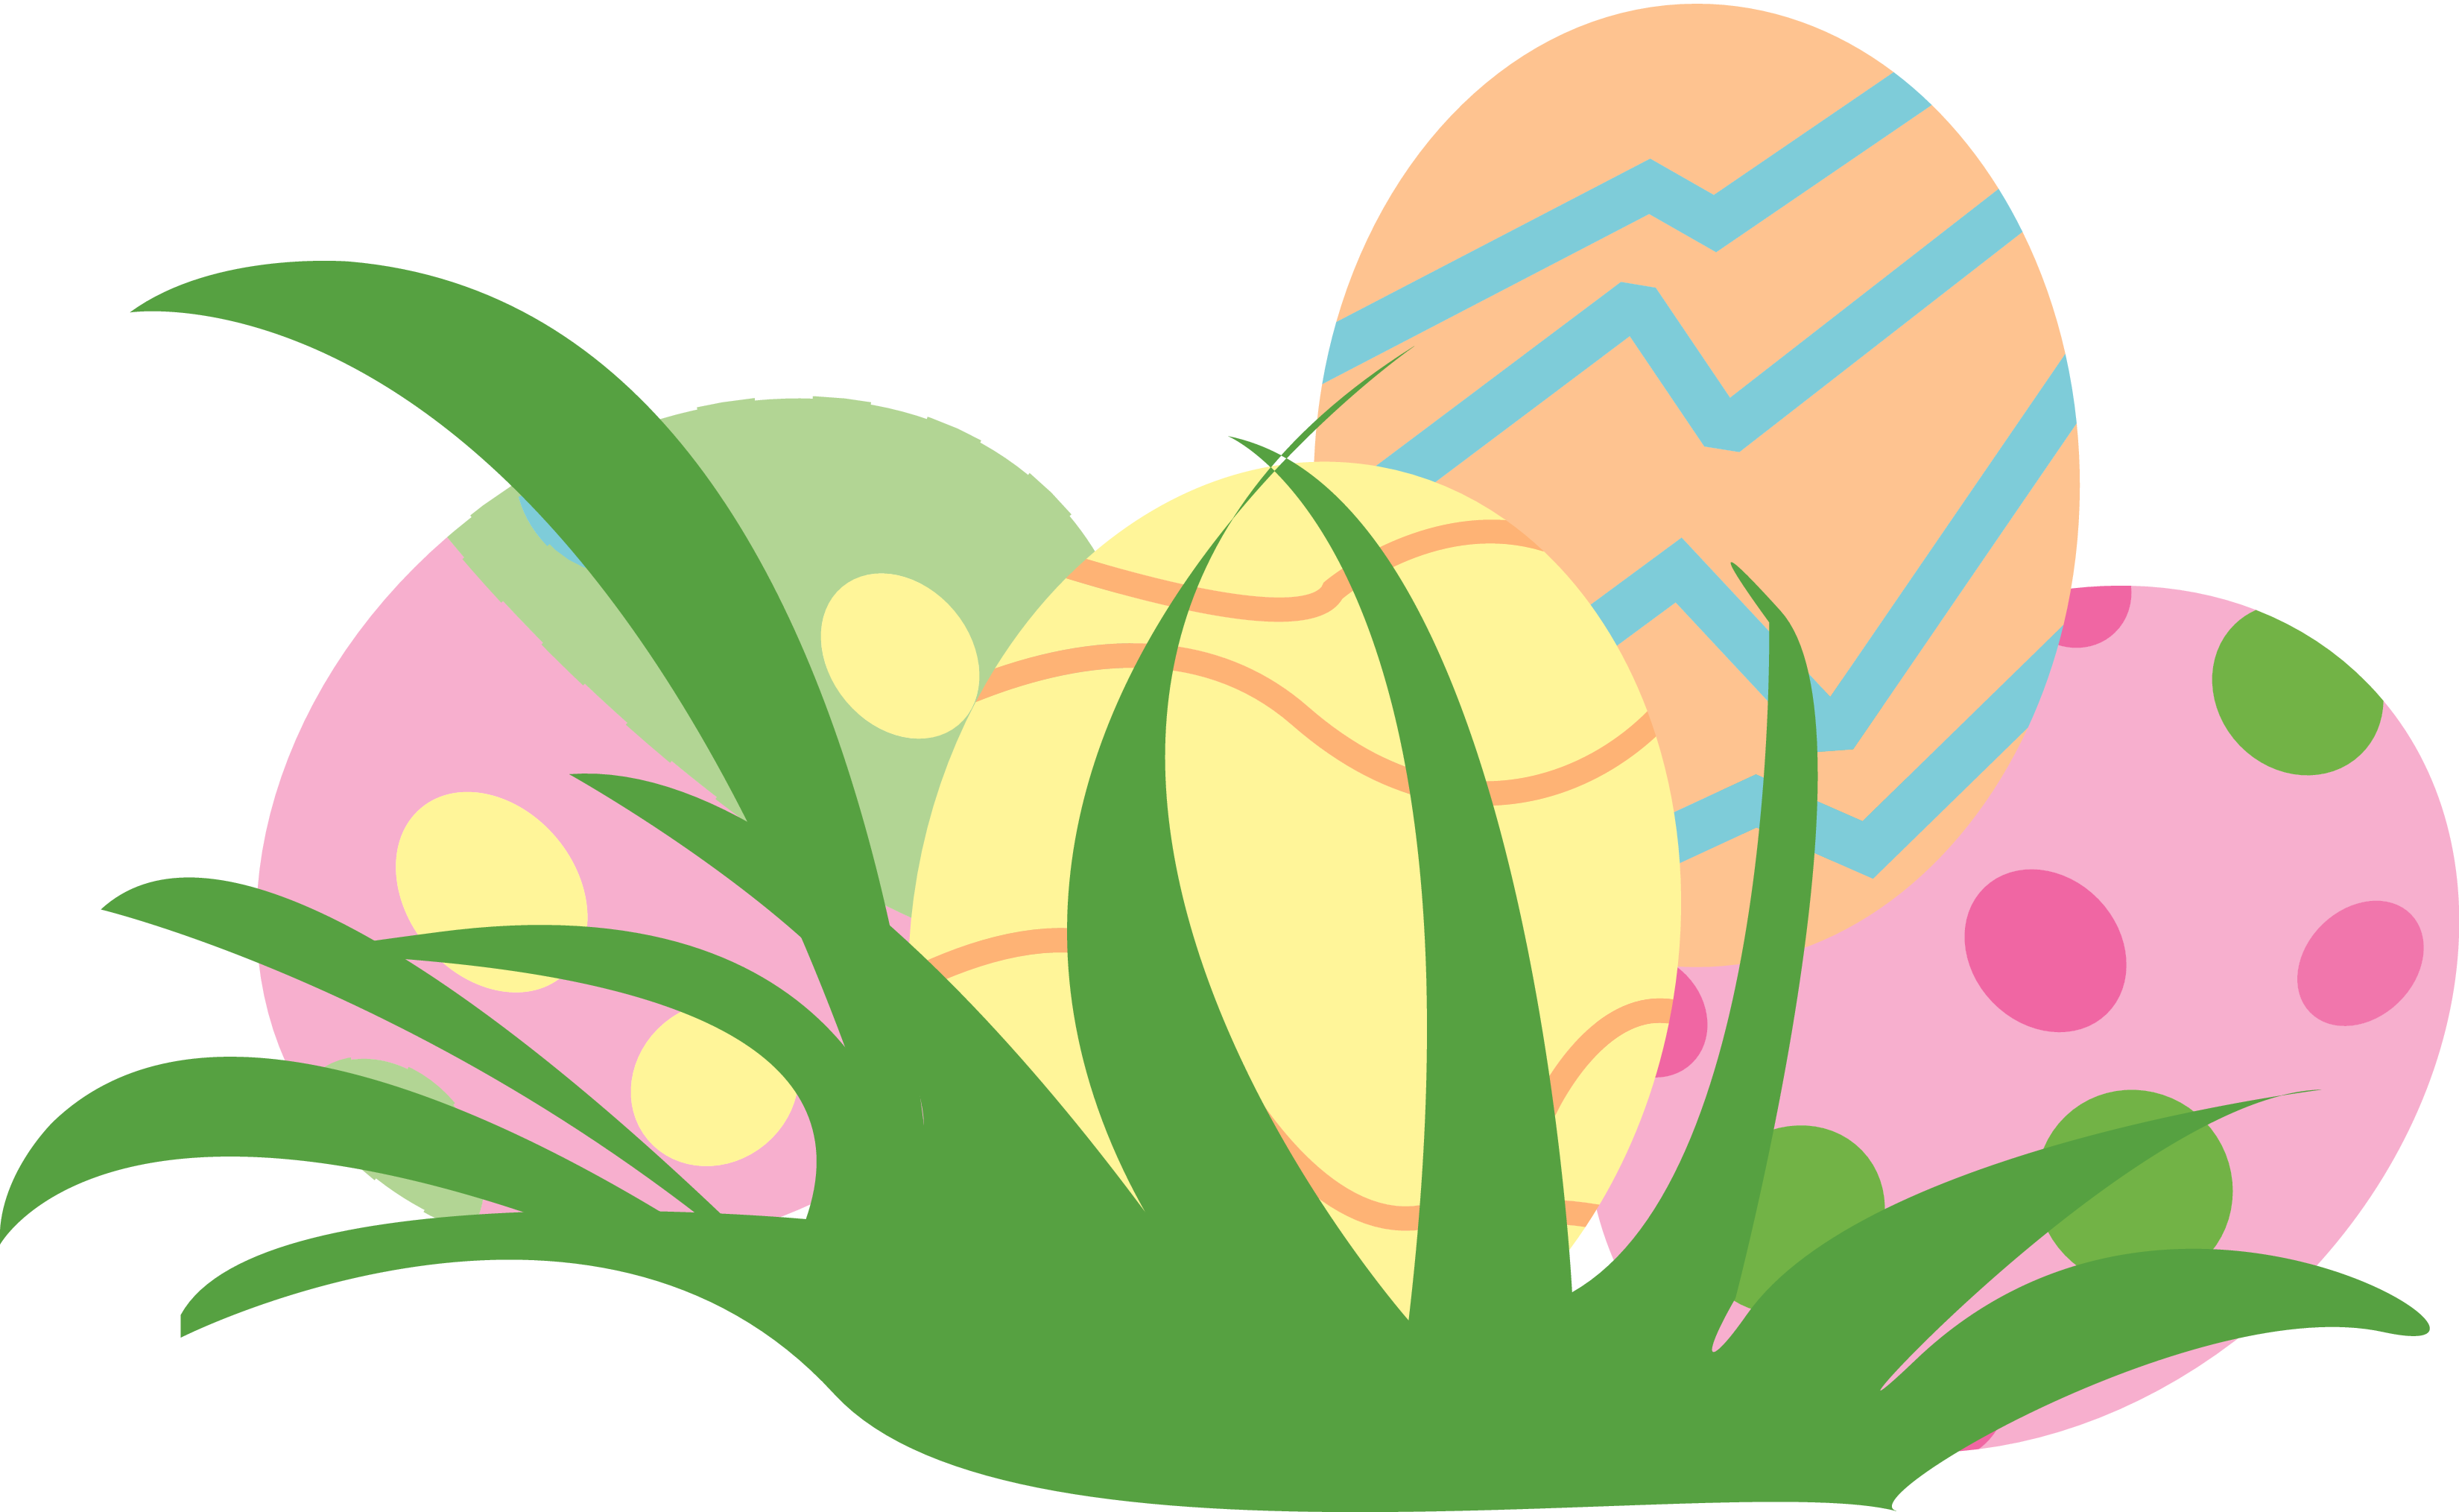 jpg free download Pin by denise ernst on Easter